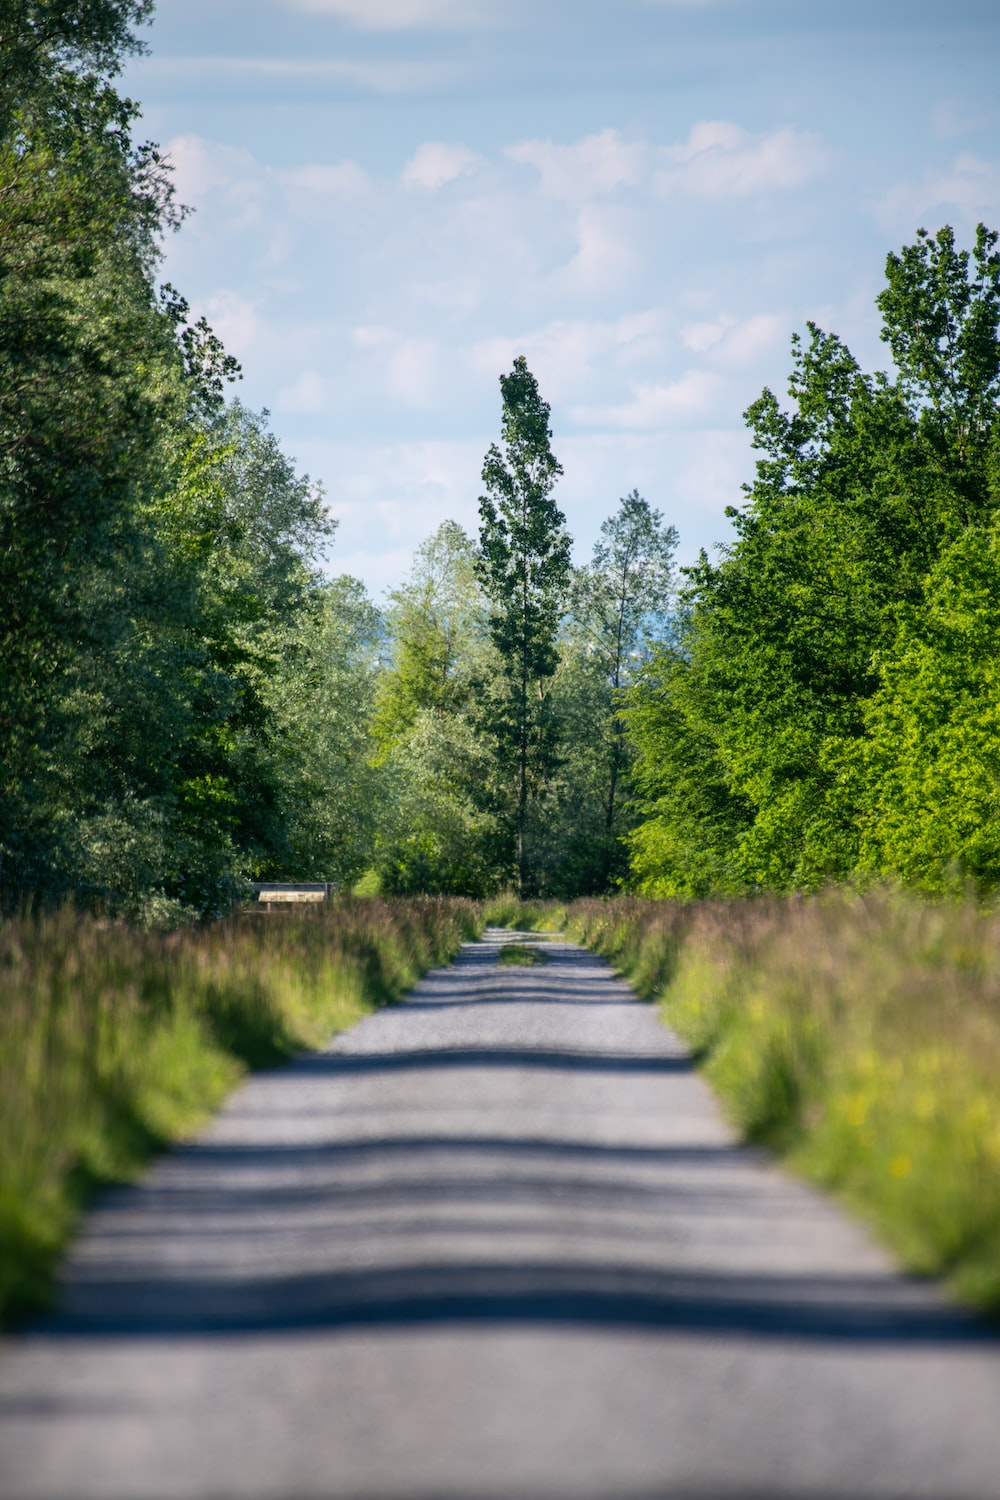 gray concrete road between green trees under white clouds and blue sky during daytime